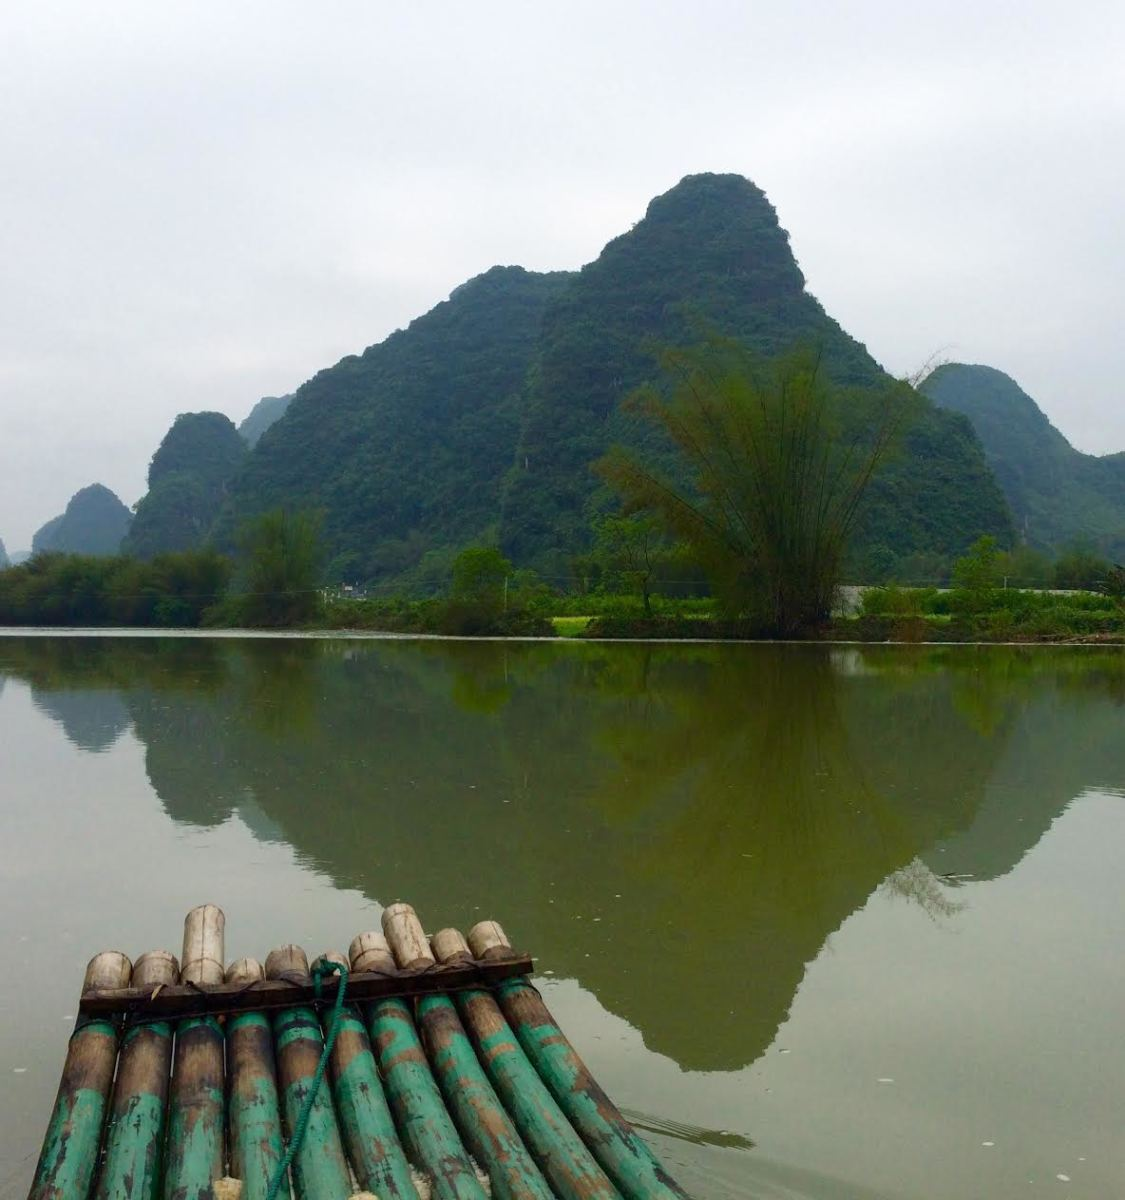 Bamboo raft on the Li River, Yangshuo, Guangzi Zhuang Autonomous Region